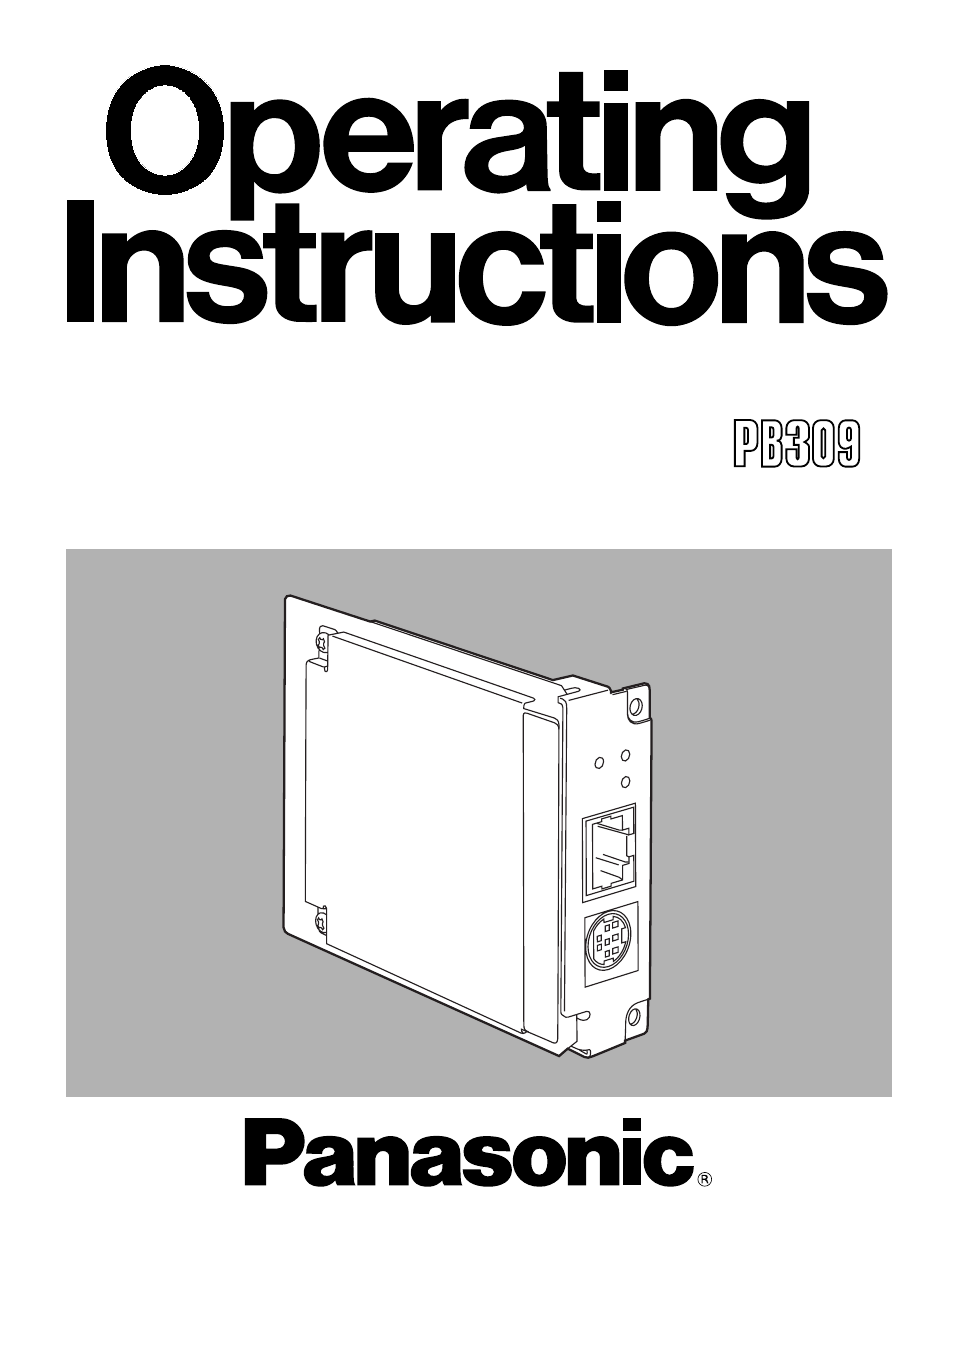 Panasonic AW-PB309P User Manual | 20 pages